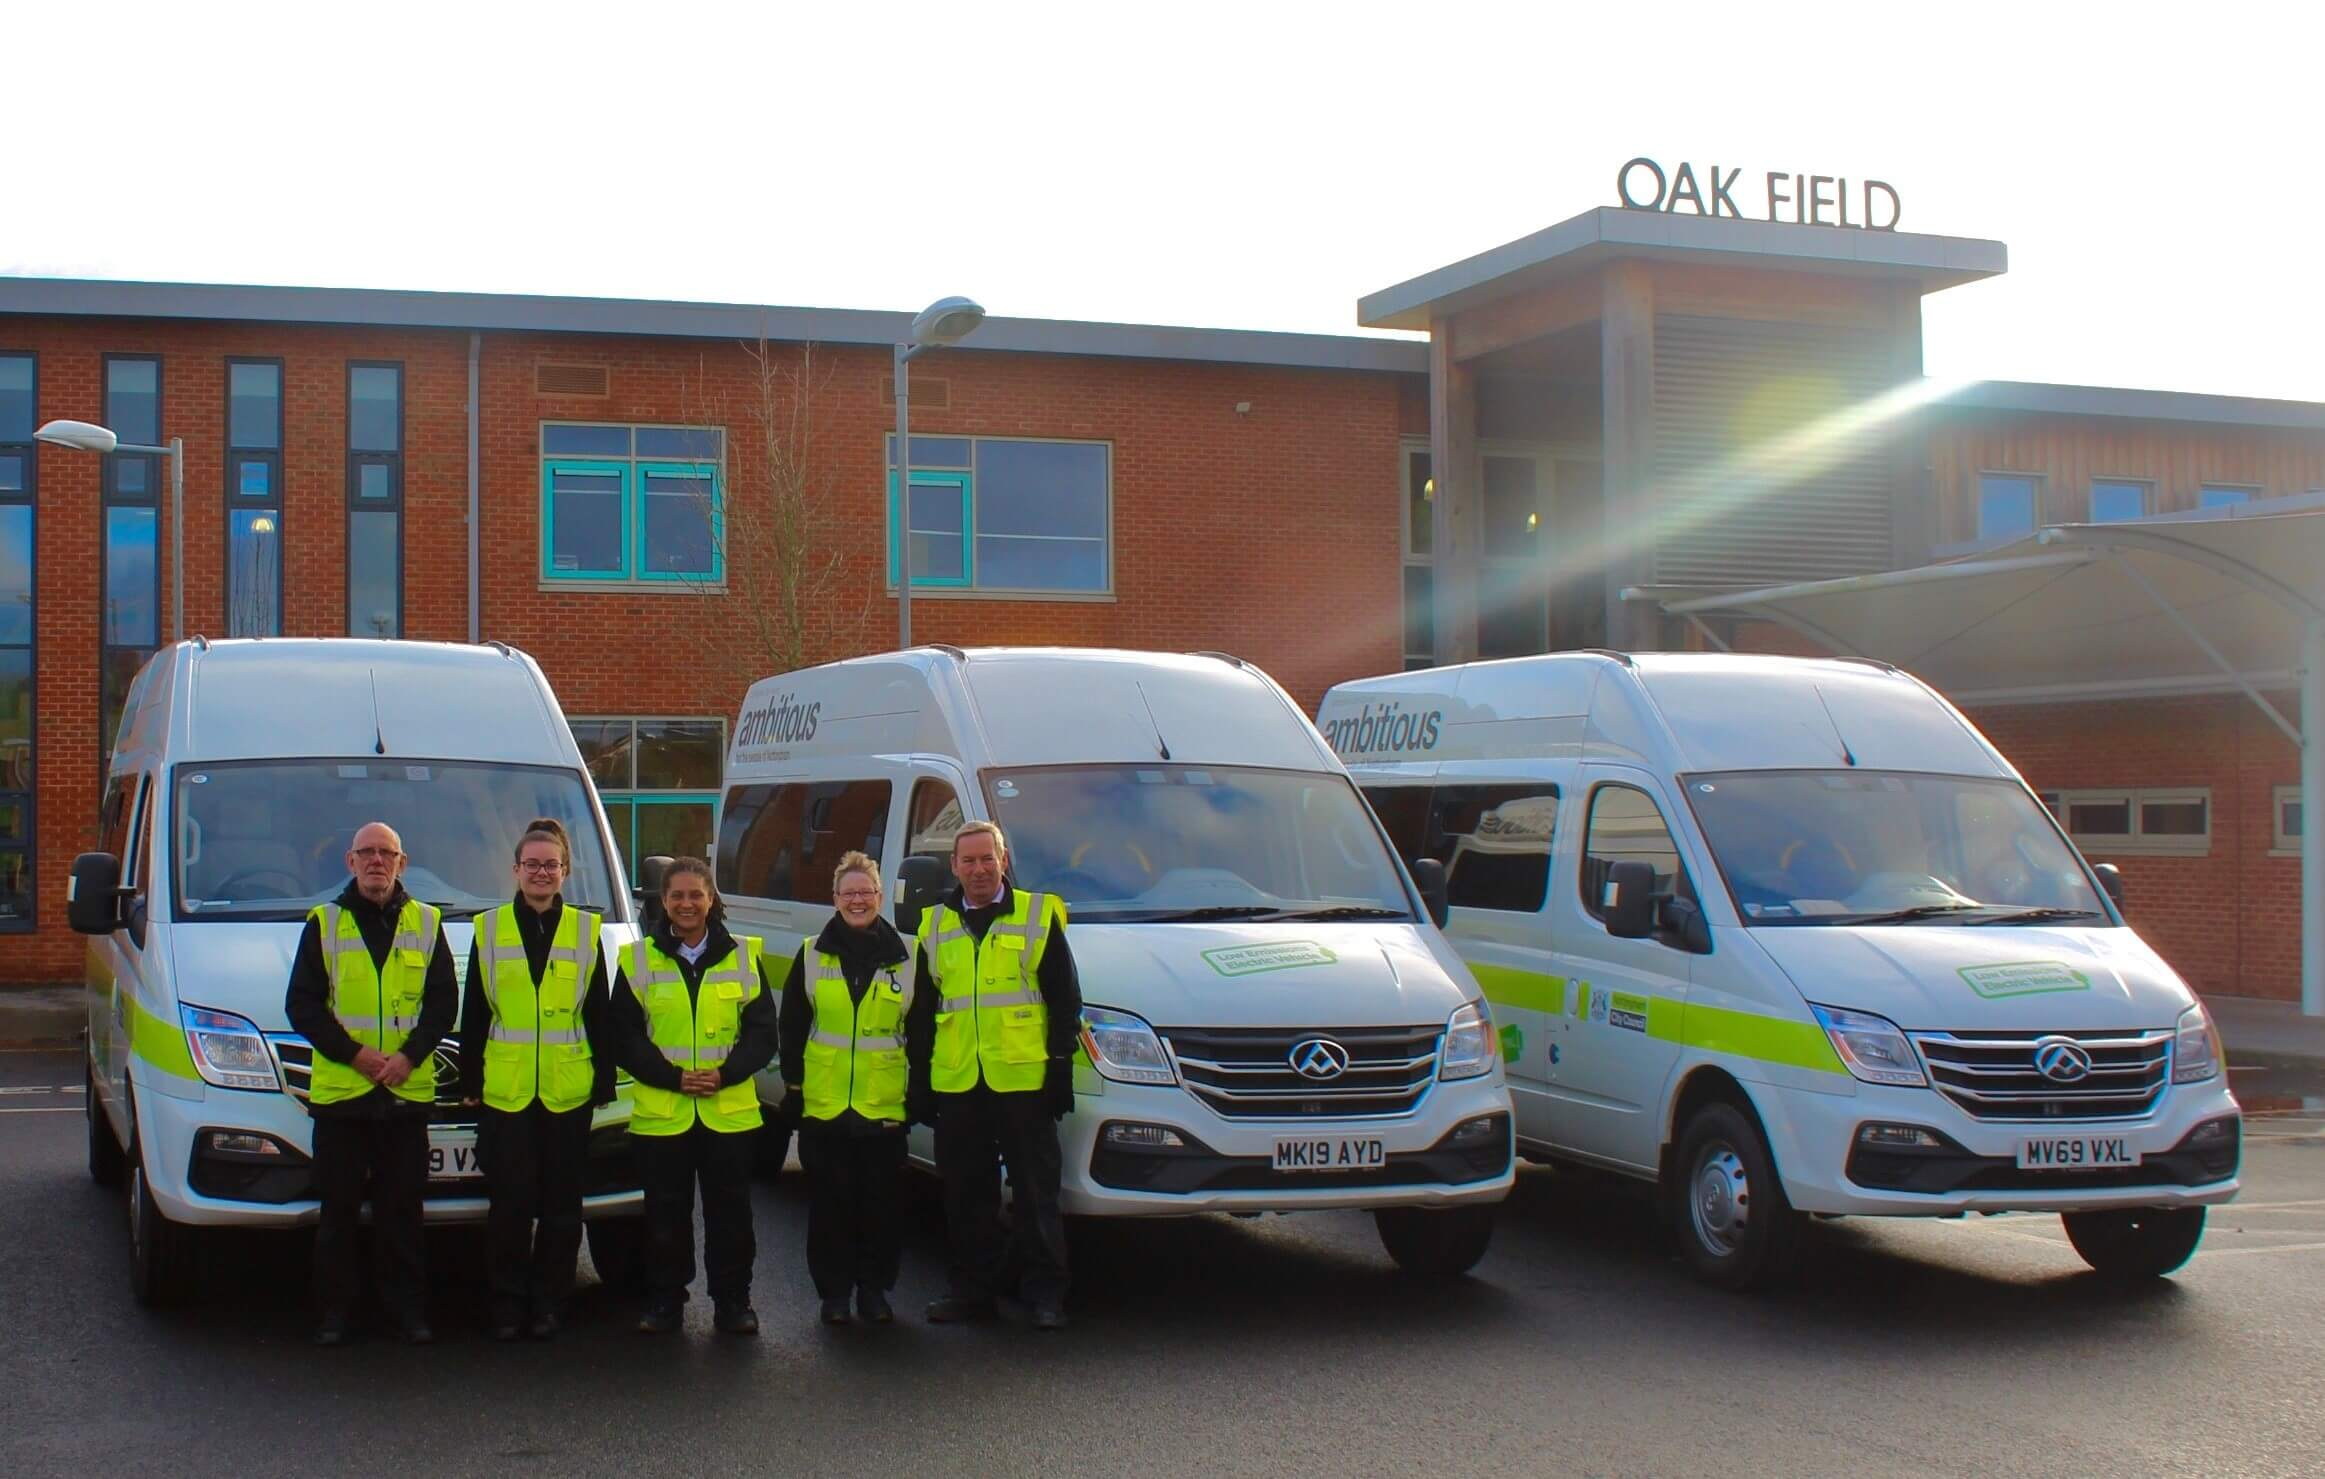 Staff in front of electric minibuses at Oakfield school